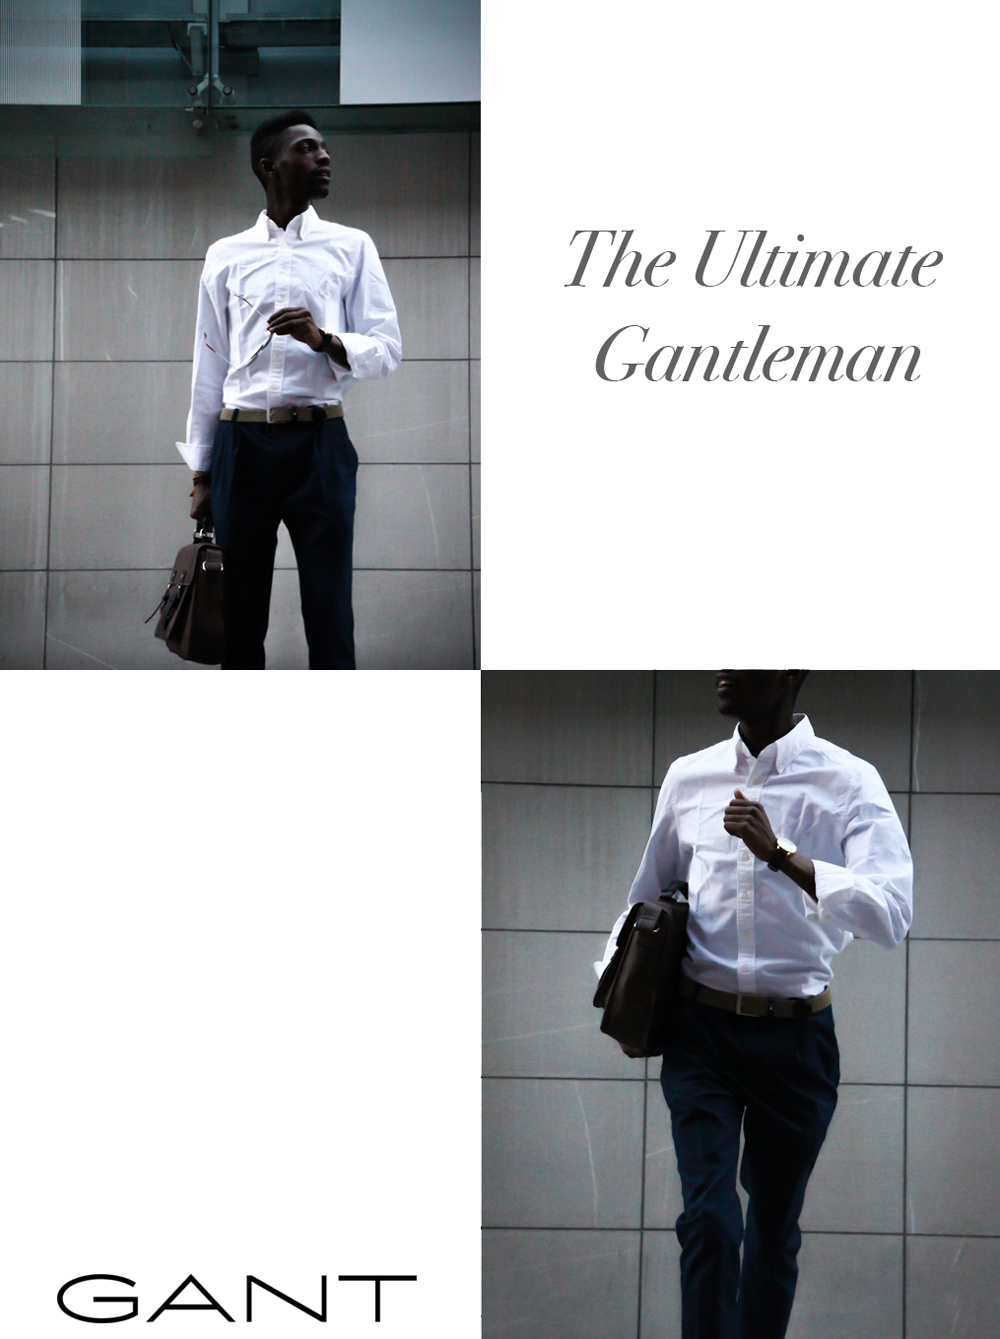 How to Style Your Gant Shirt Like a Real Gantleman